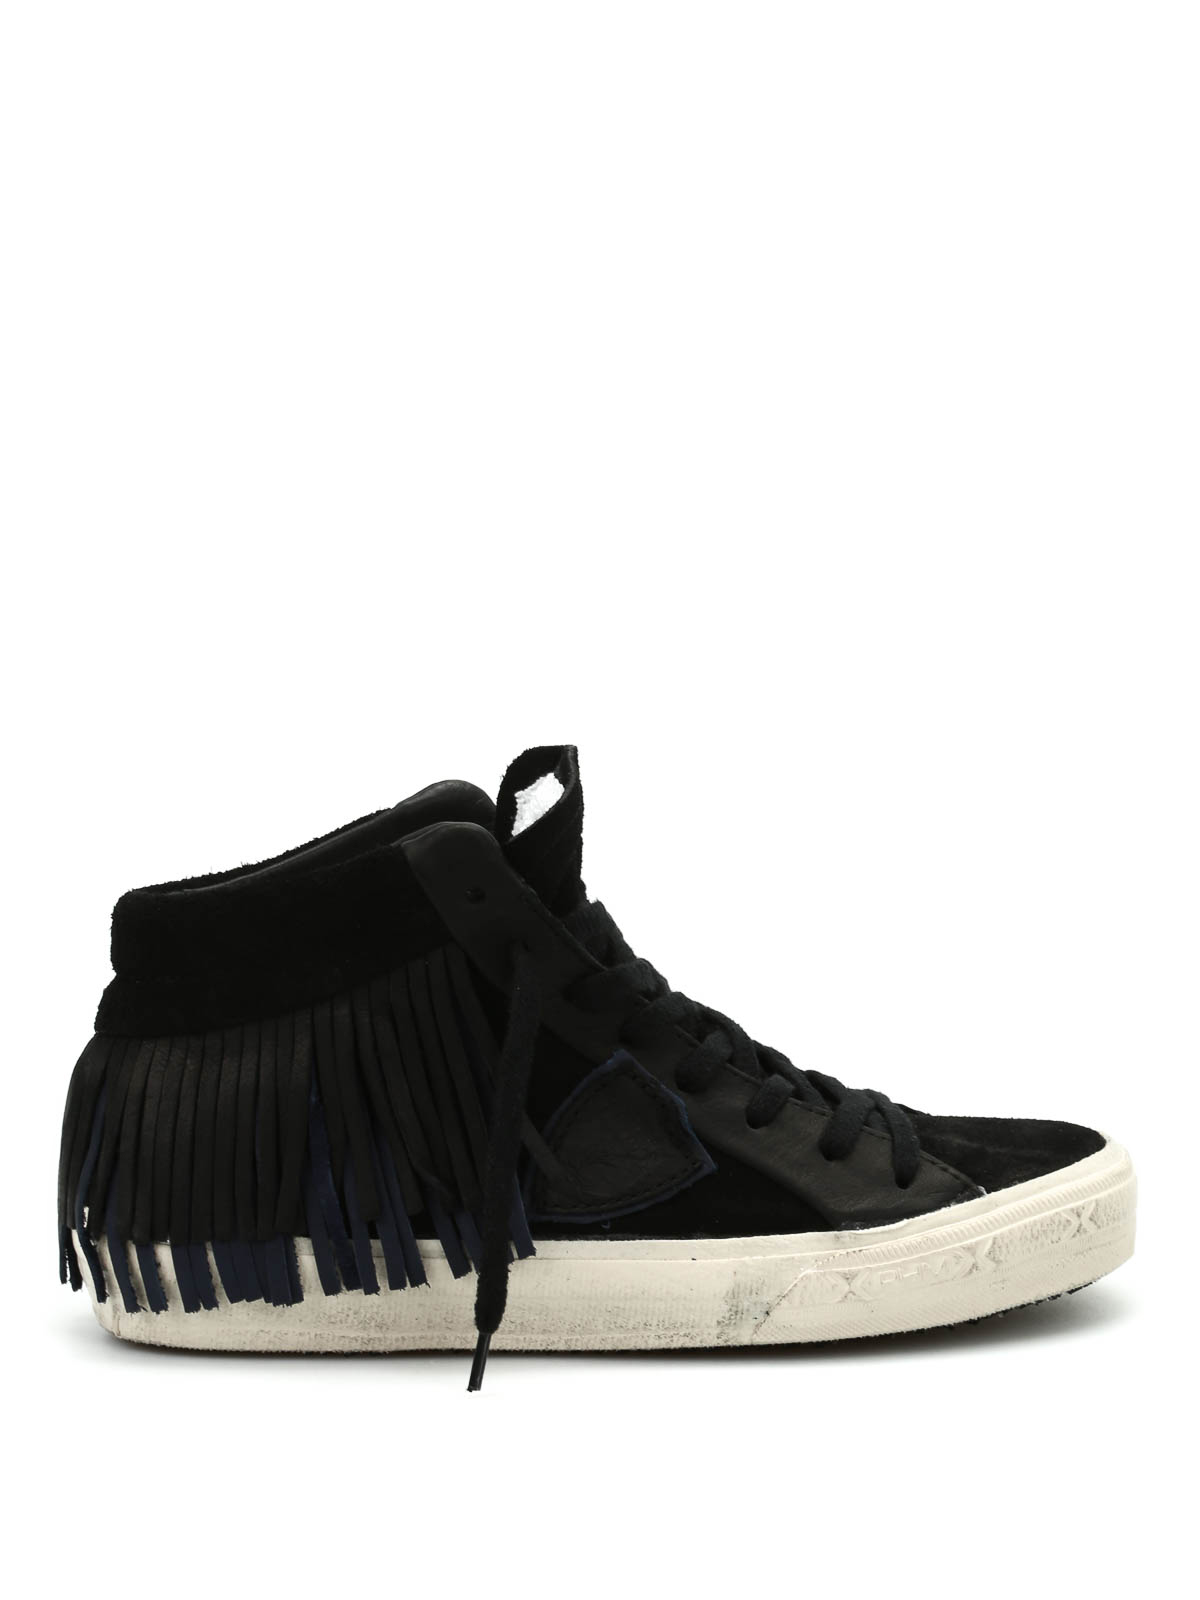 middle high fringed sneakers by philippe model trainers ikrix. Black Bedroom Furniture Sets. Home Design Ideas